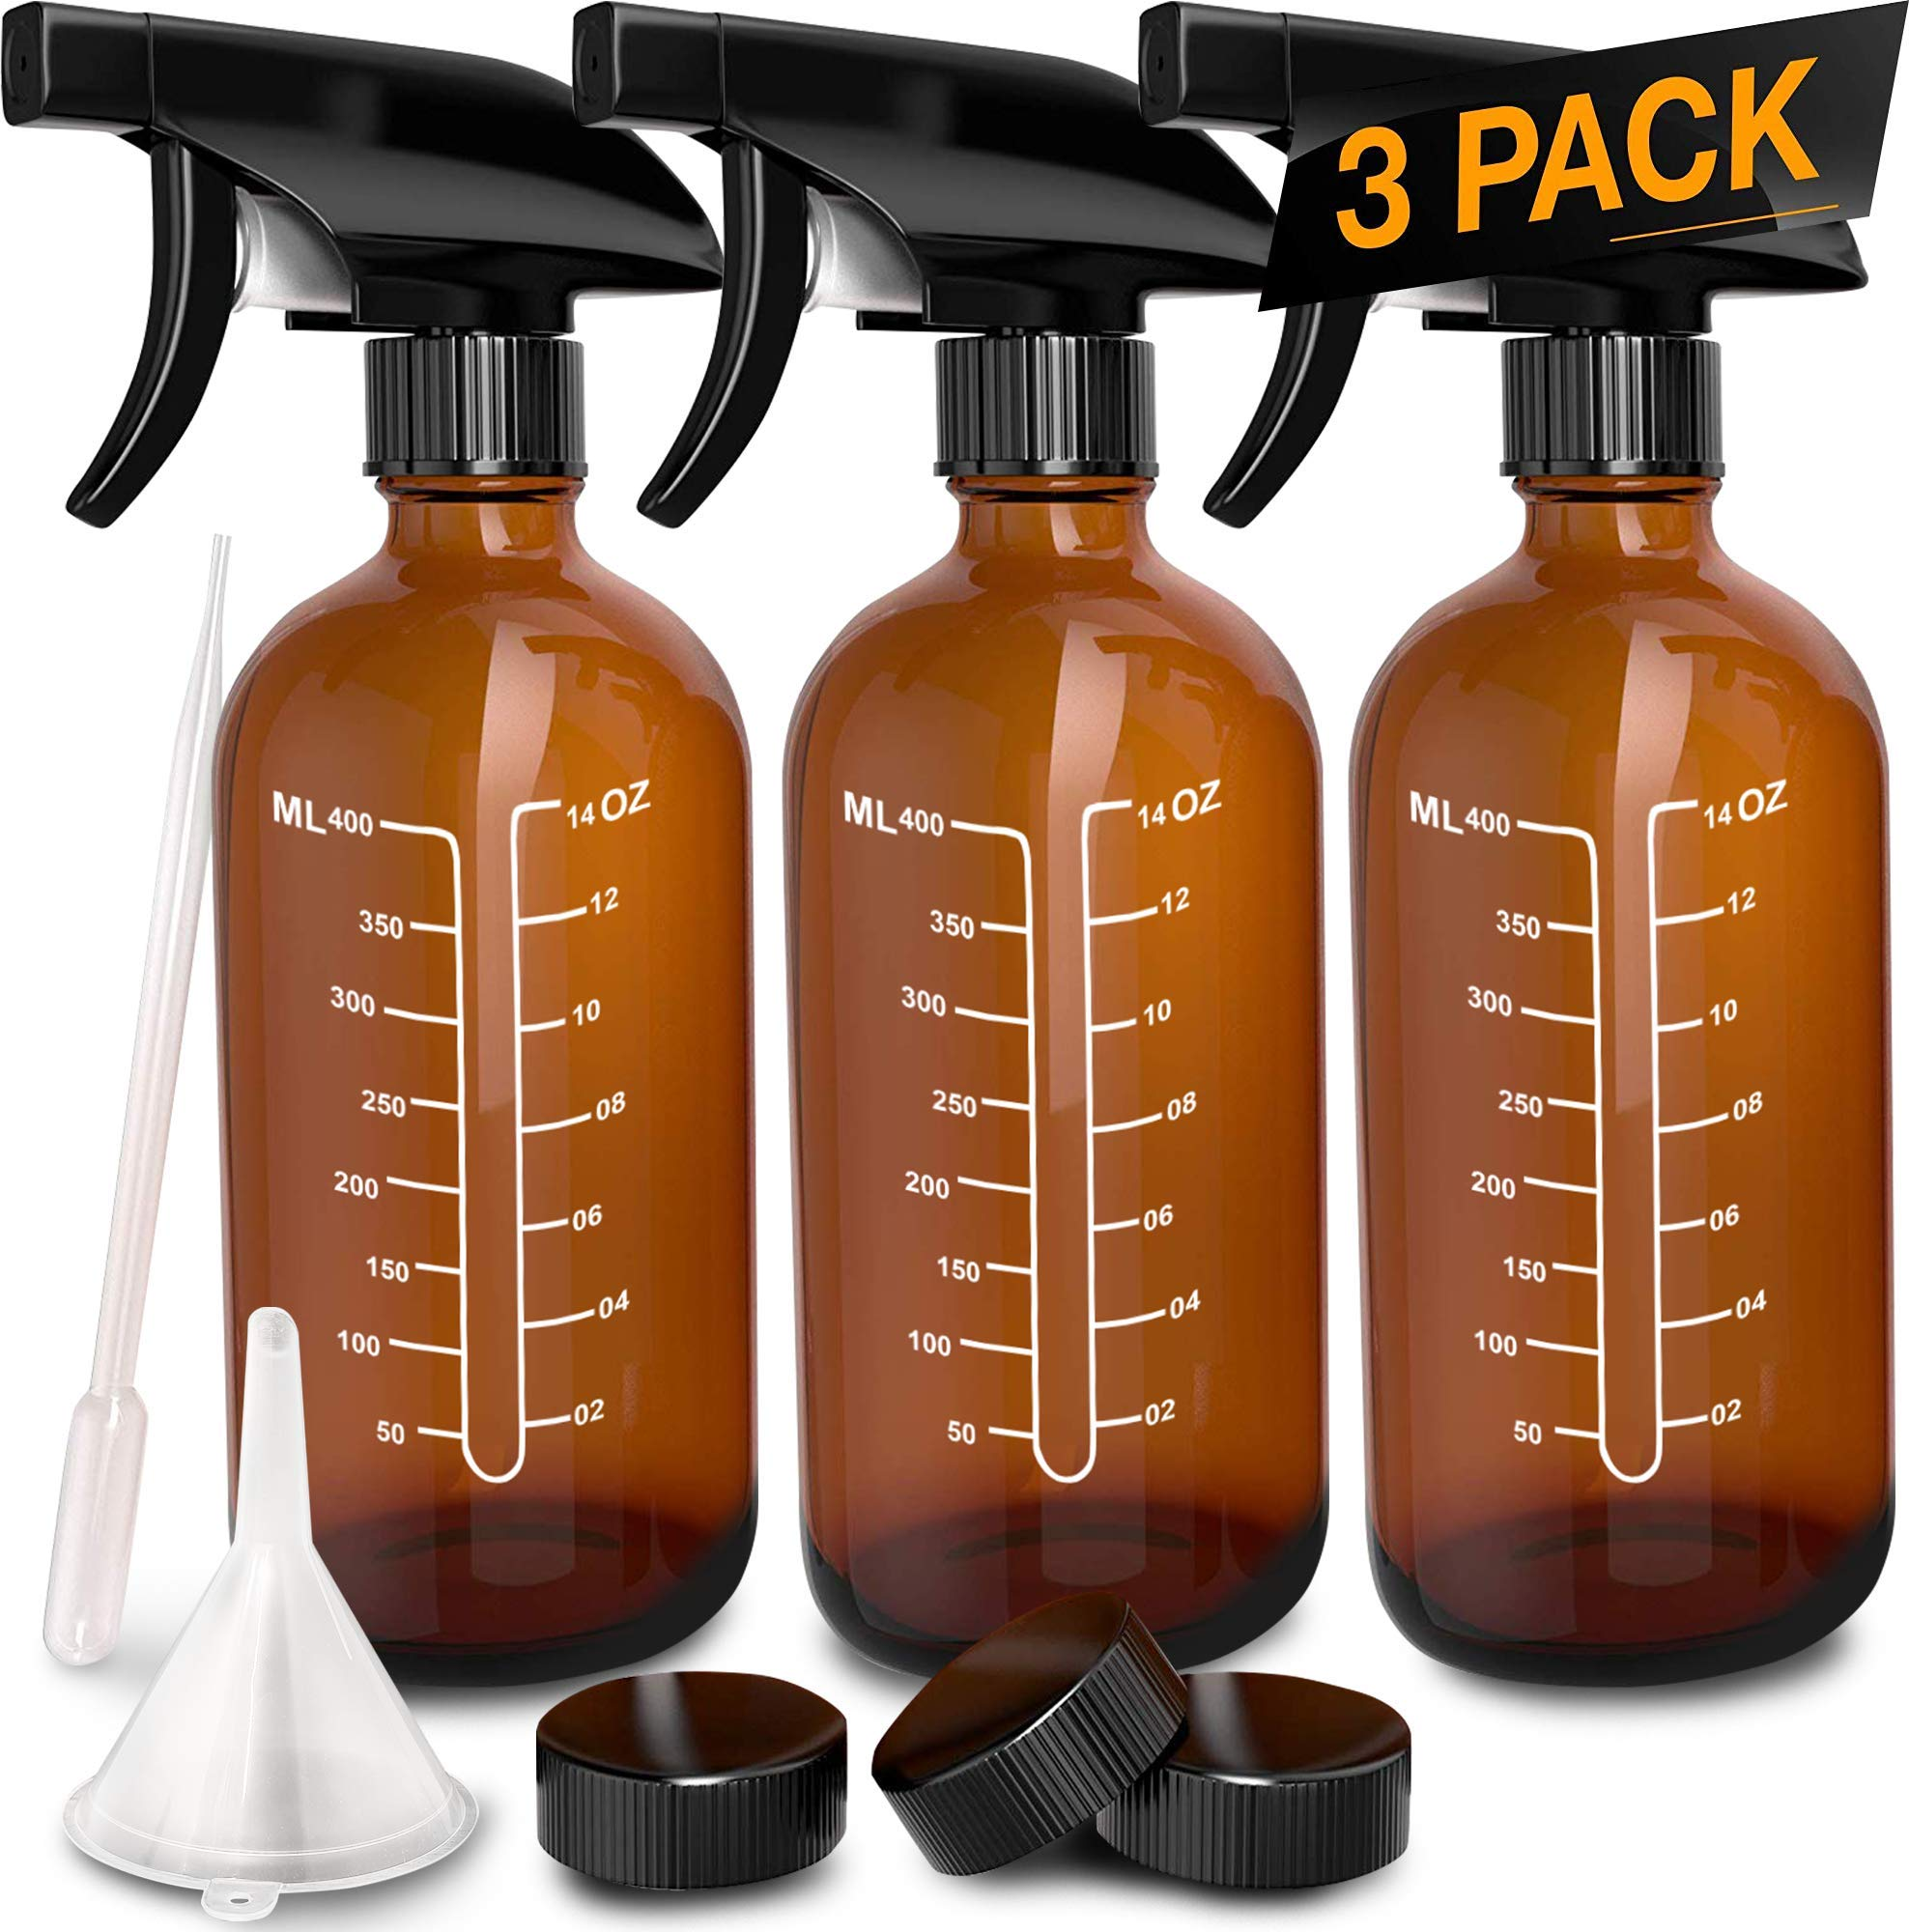 3 Pack - Refillable Empty Amber Glass Spray Bottles [Free Phenolic Cap, Pipette and Funnel] for Cleaning Solutions, Hair, Essential Oils, Plants - Trigger Sprayer with Mist and Single Mode (16 OZ) by Nylea